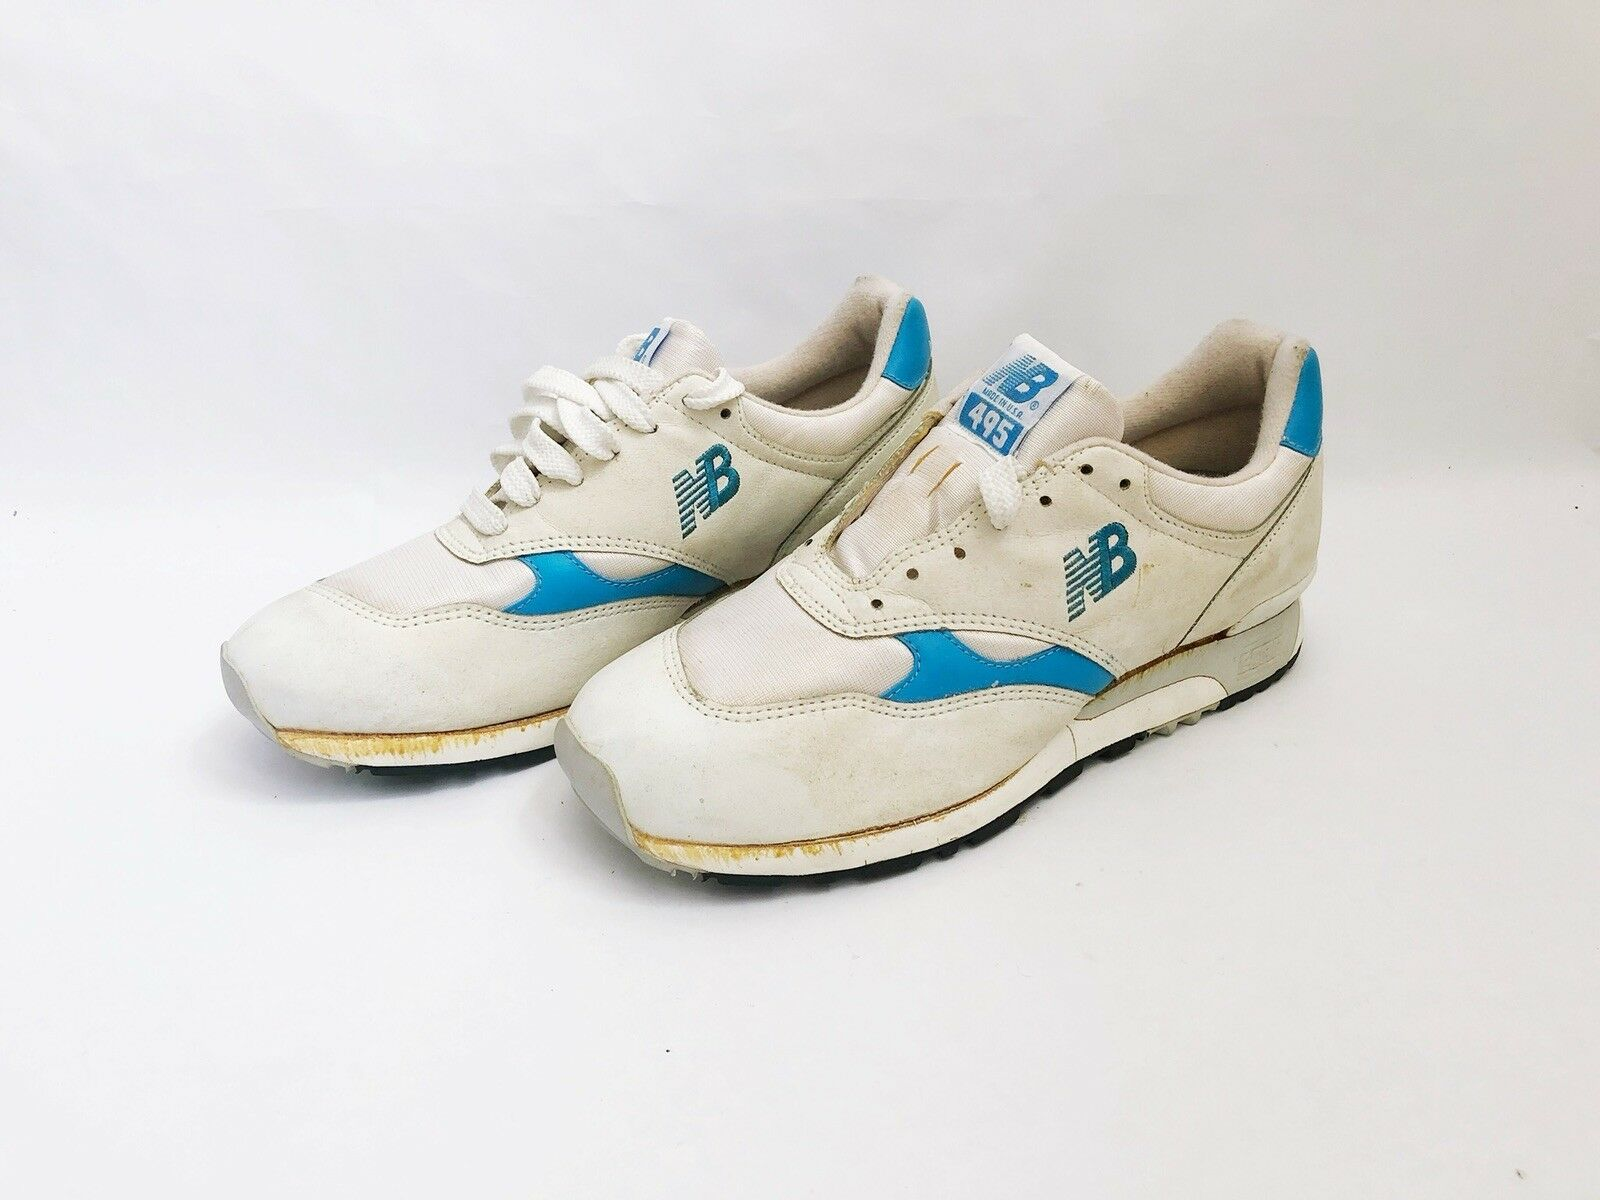 Vintage new balance shoes shoes shoes womens size 10 W495WB deadstock NOS 1990 made in USA 604f83